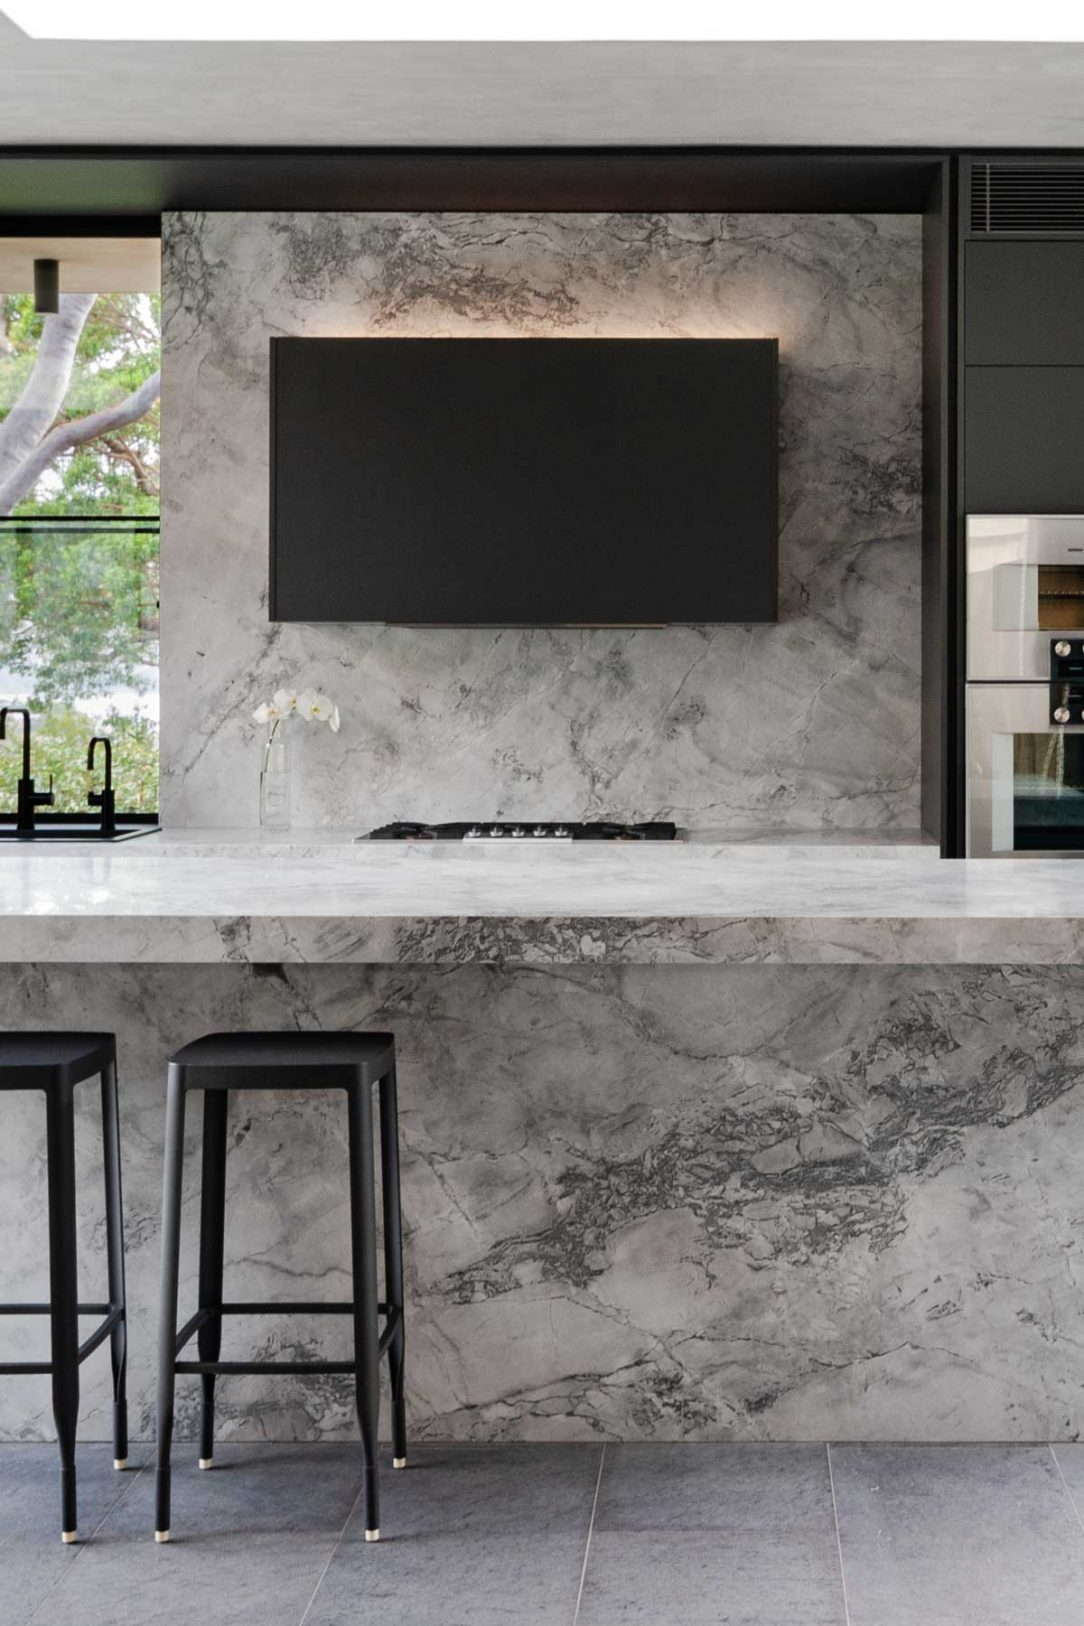 Luxury kitchen design featuring superwhite natural stone, Gaggenau appliances and hidden butlers pantry